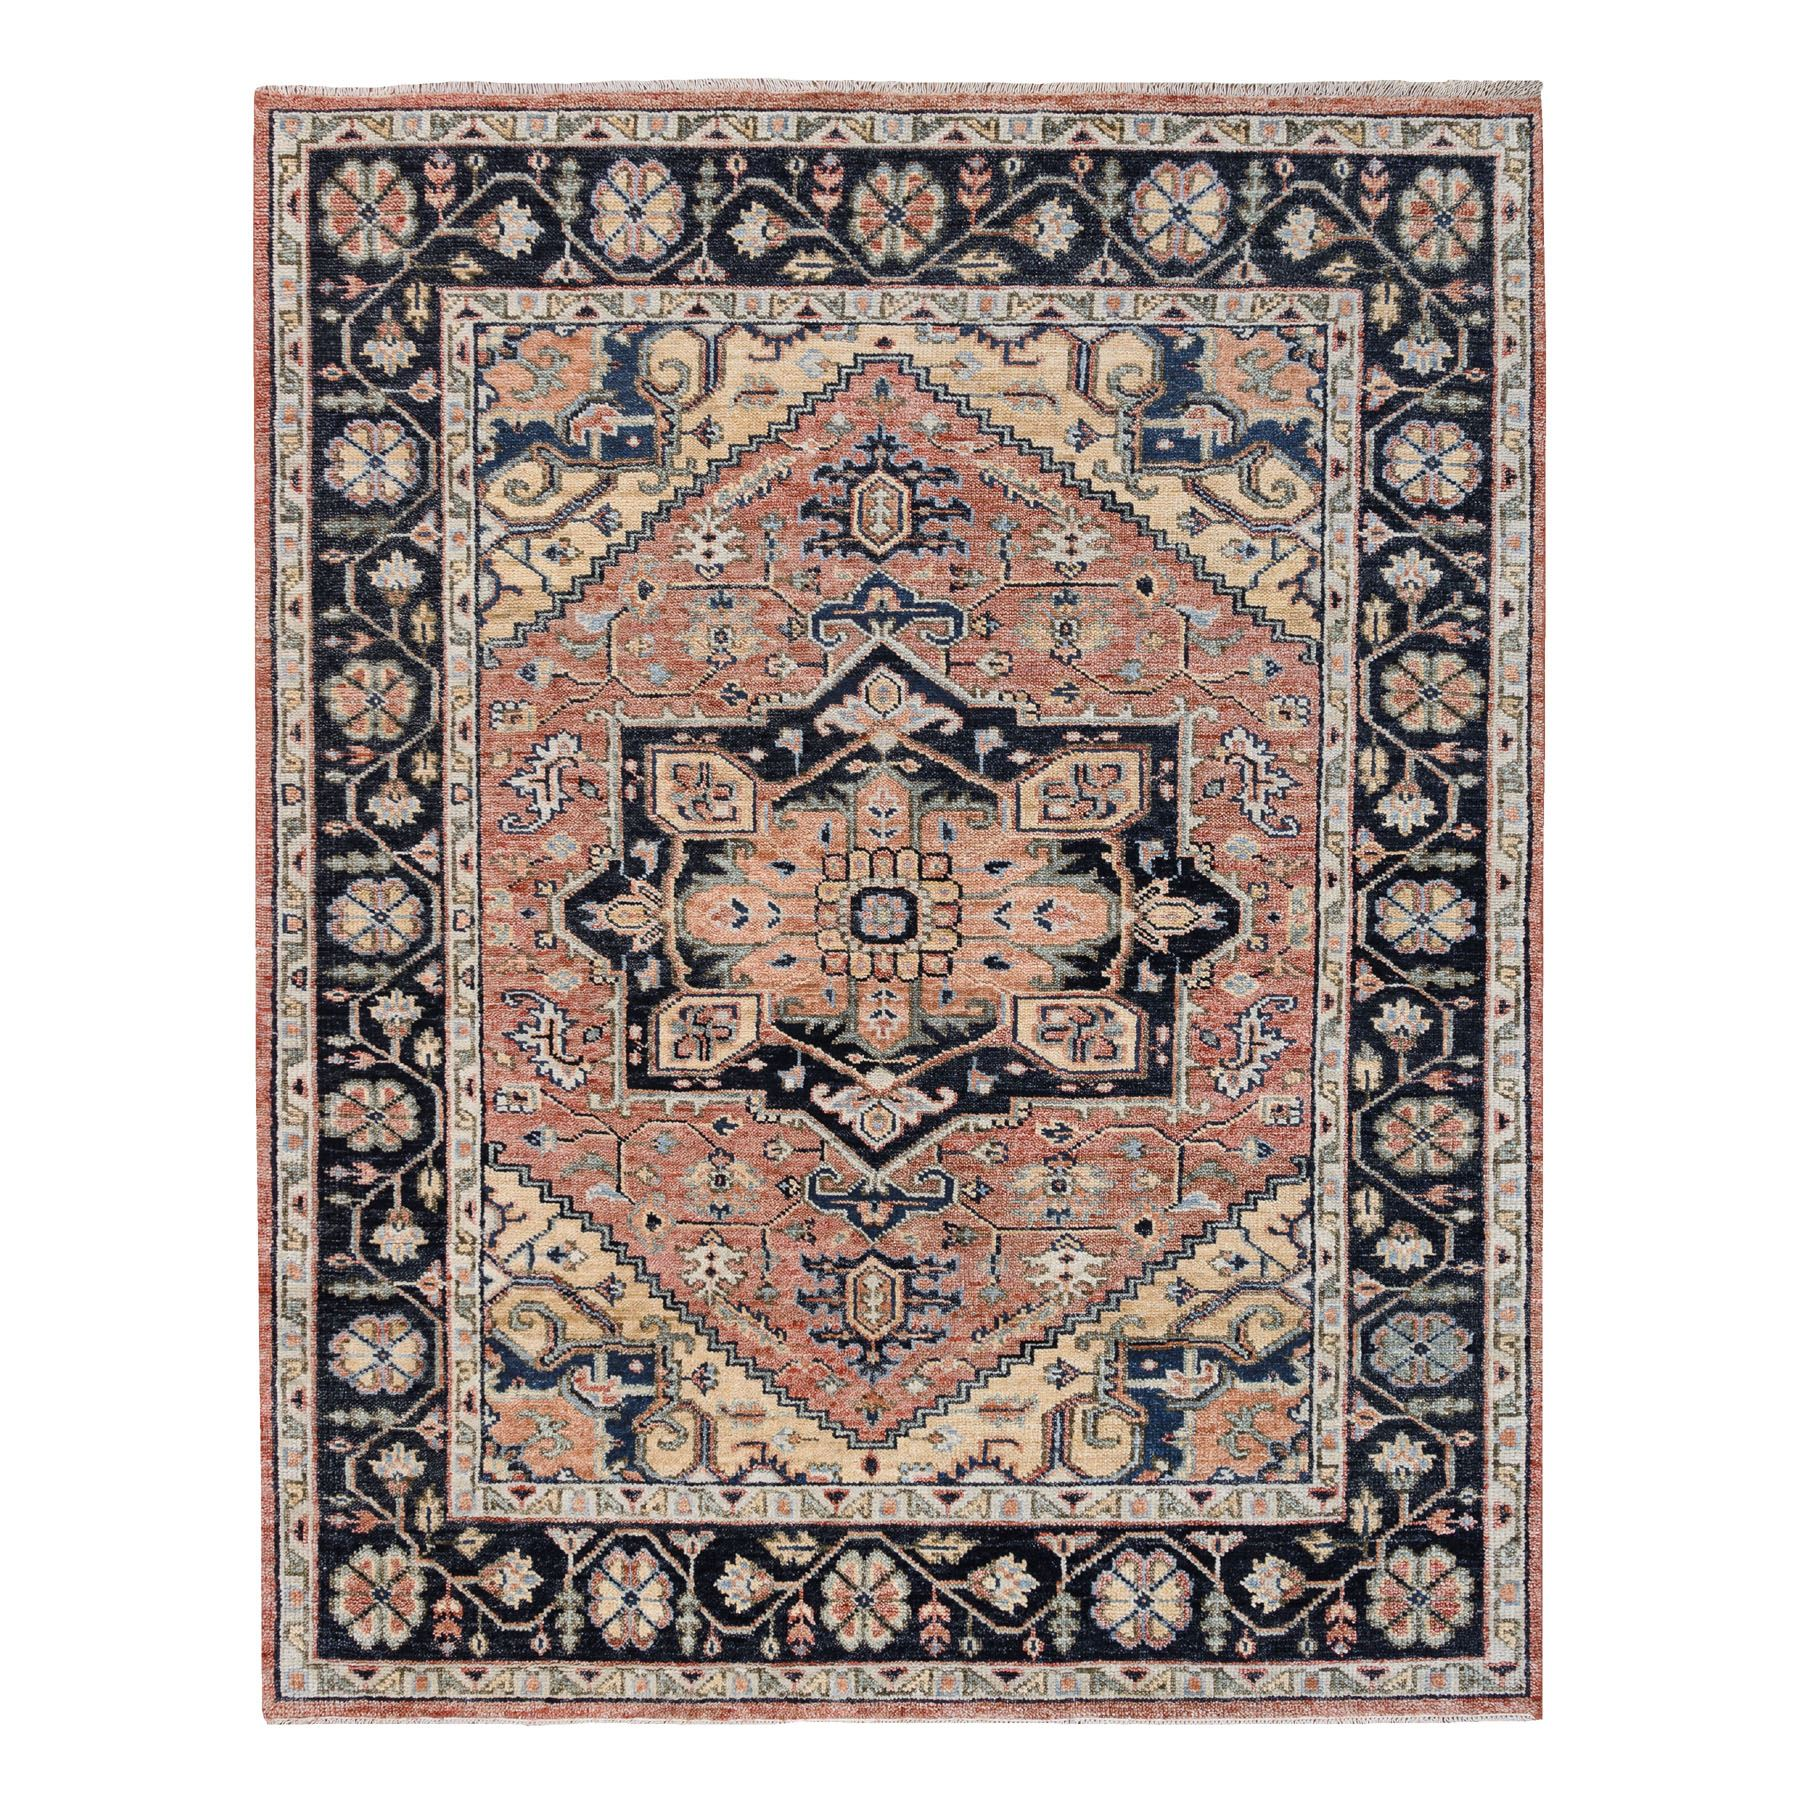 Tribal & Geometric Rugs LUV560079